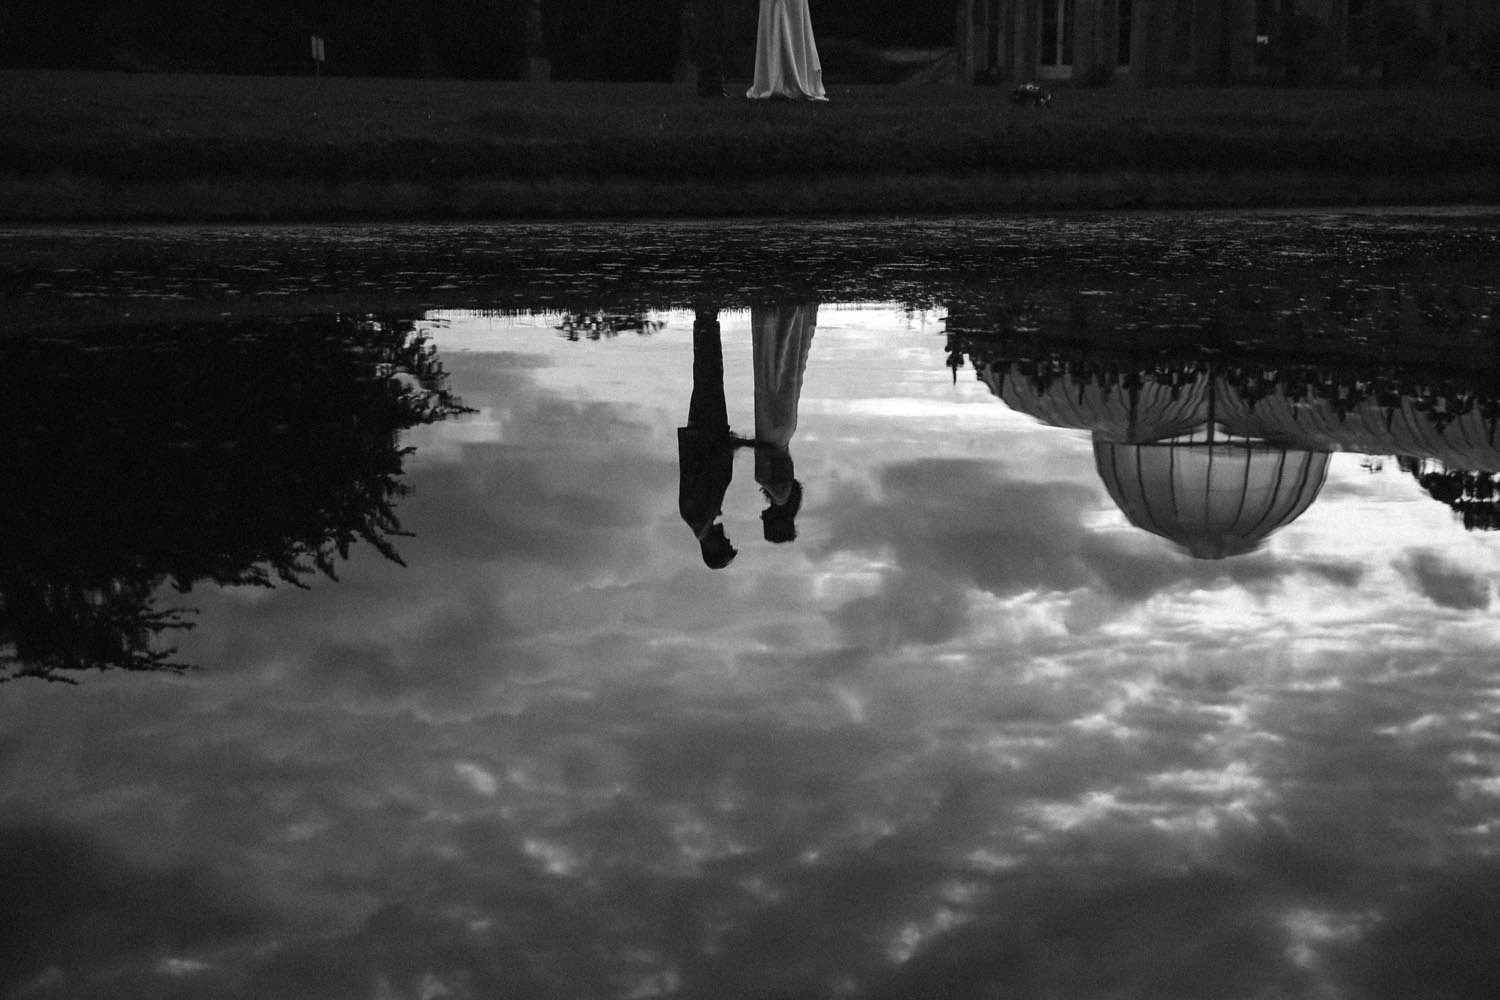 Reflection of a married couple in the lake at Killruddery